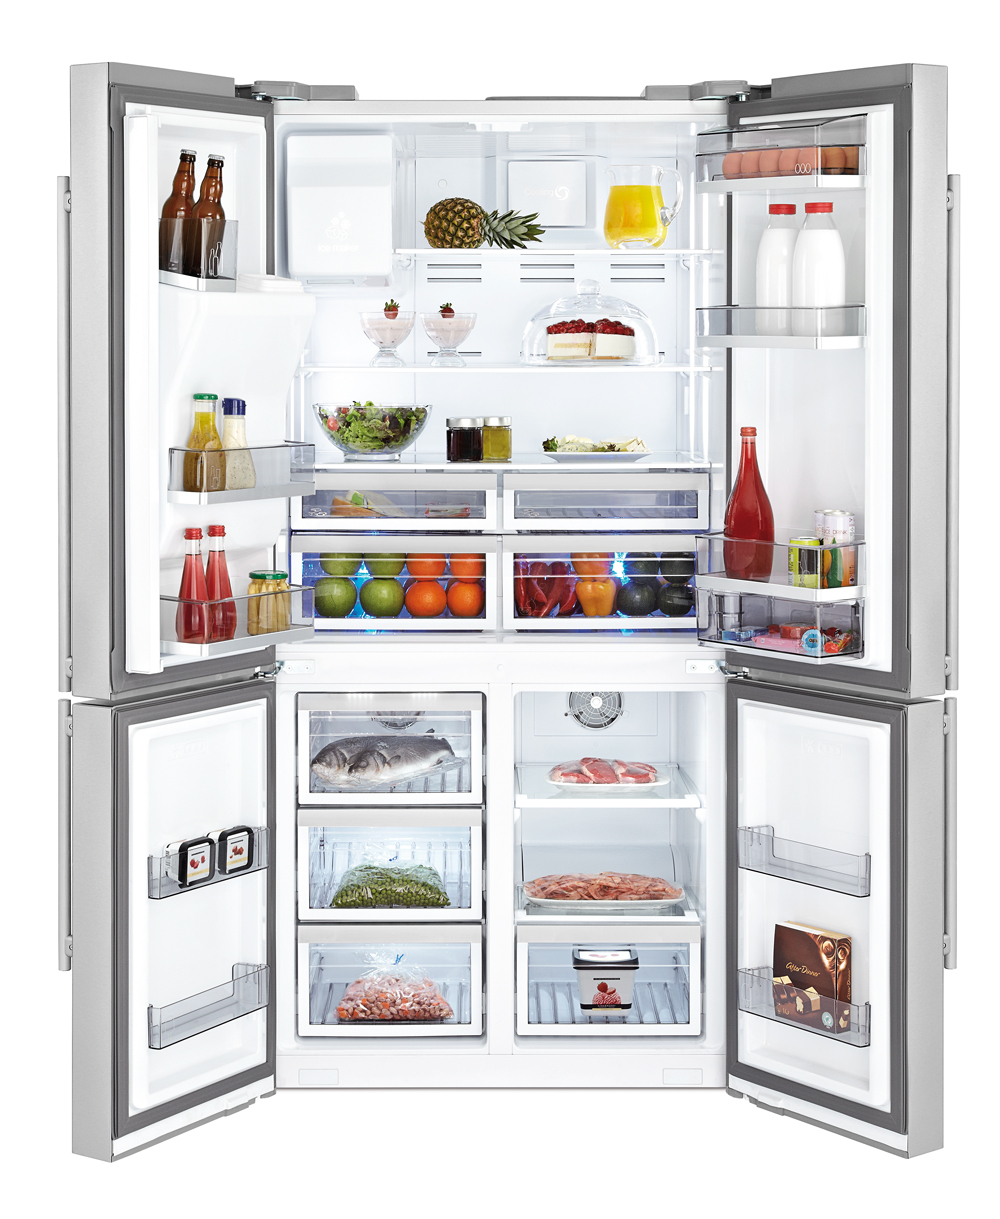 Blomberg Introduces The Sedan Of Refrigerators Remodeling